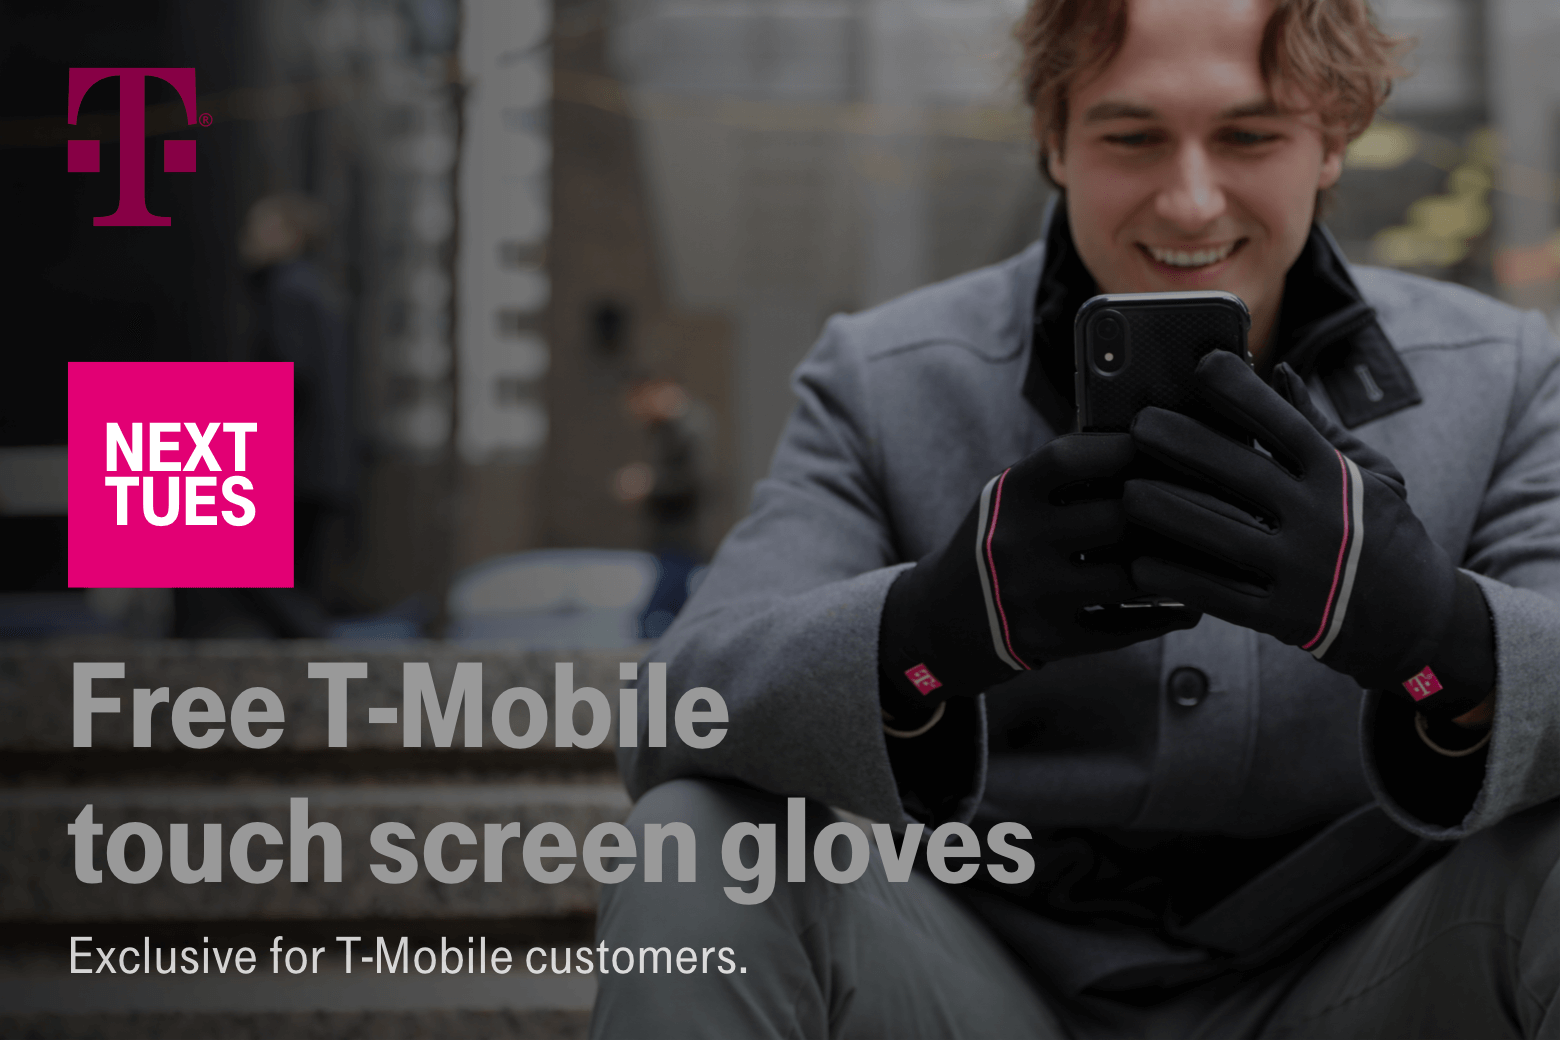 T-Mobile. Next Tuesday. Free T-Mobile touch screen gloves. Exclusive for T-Mobile customers.